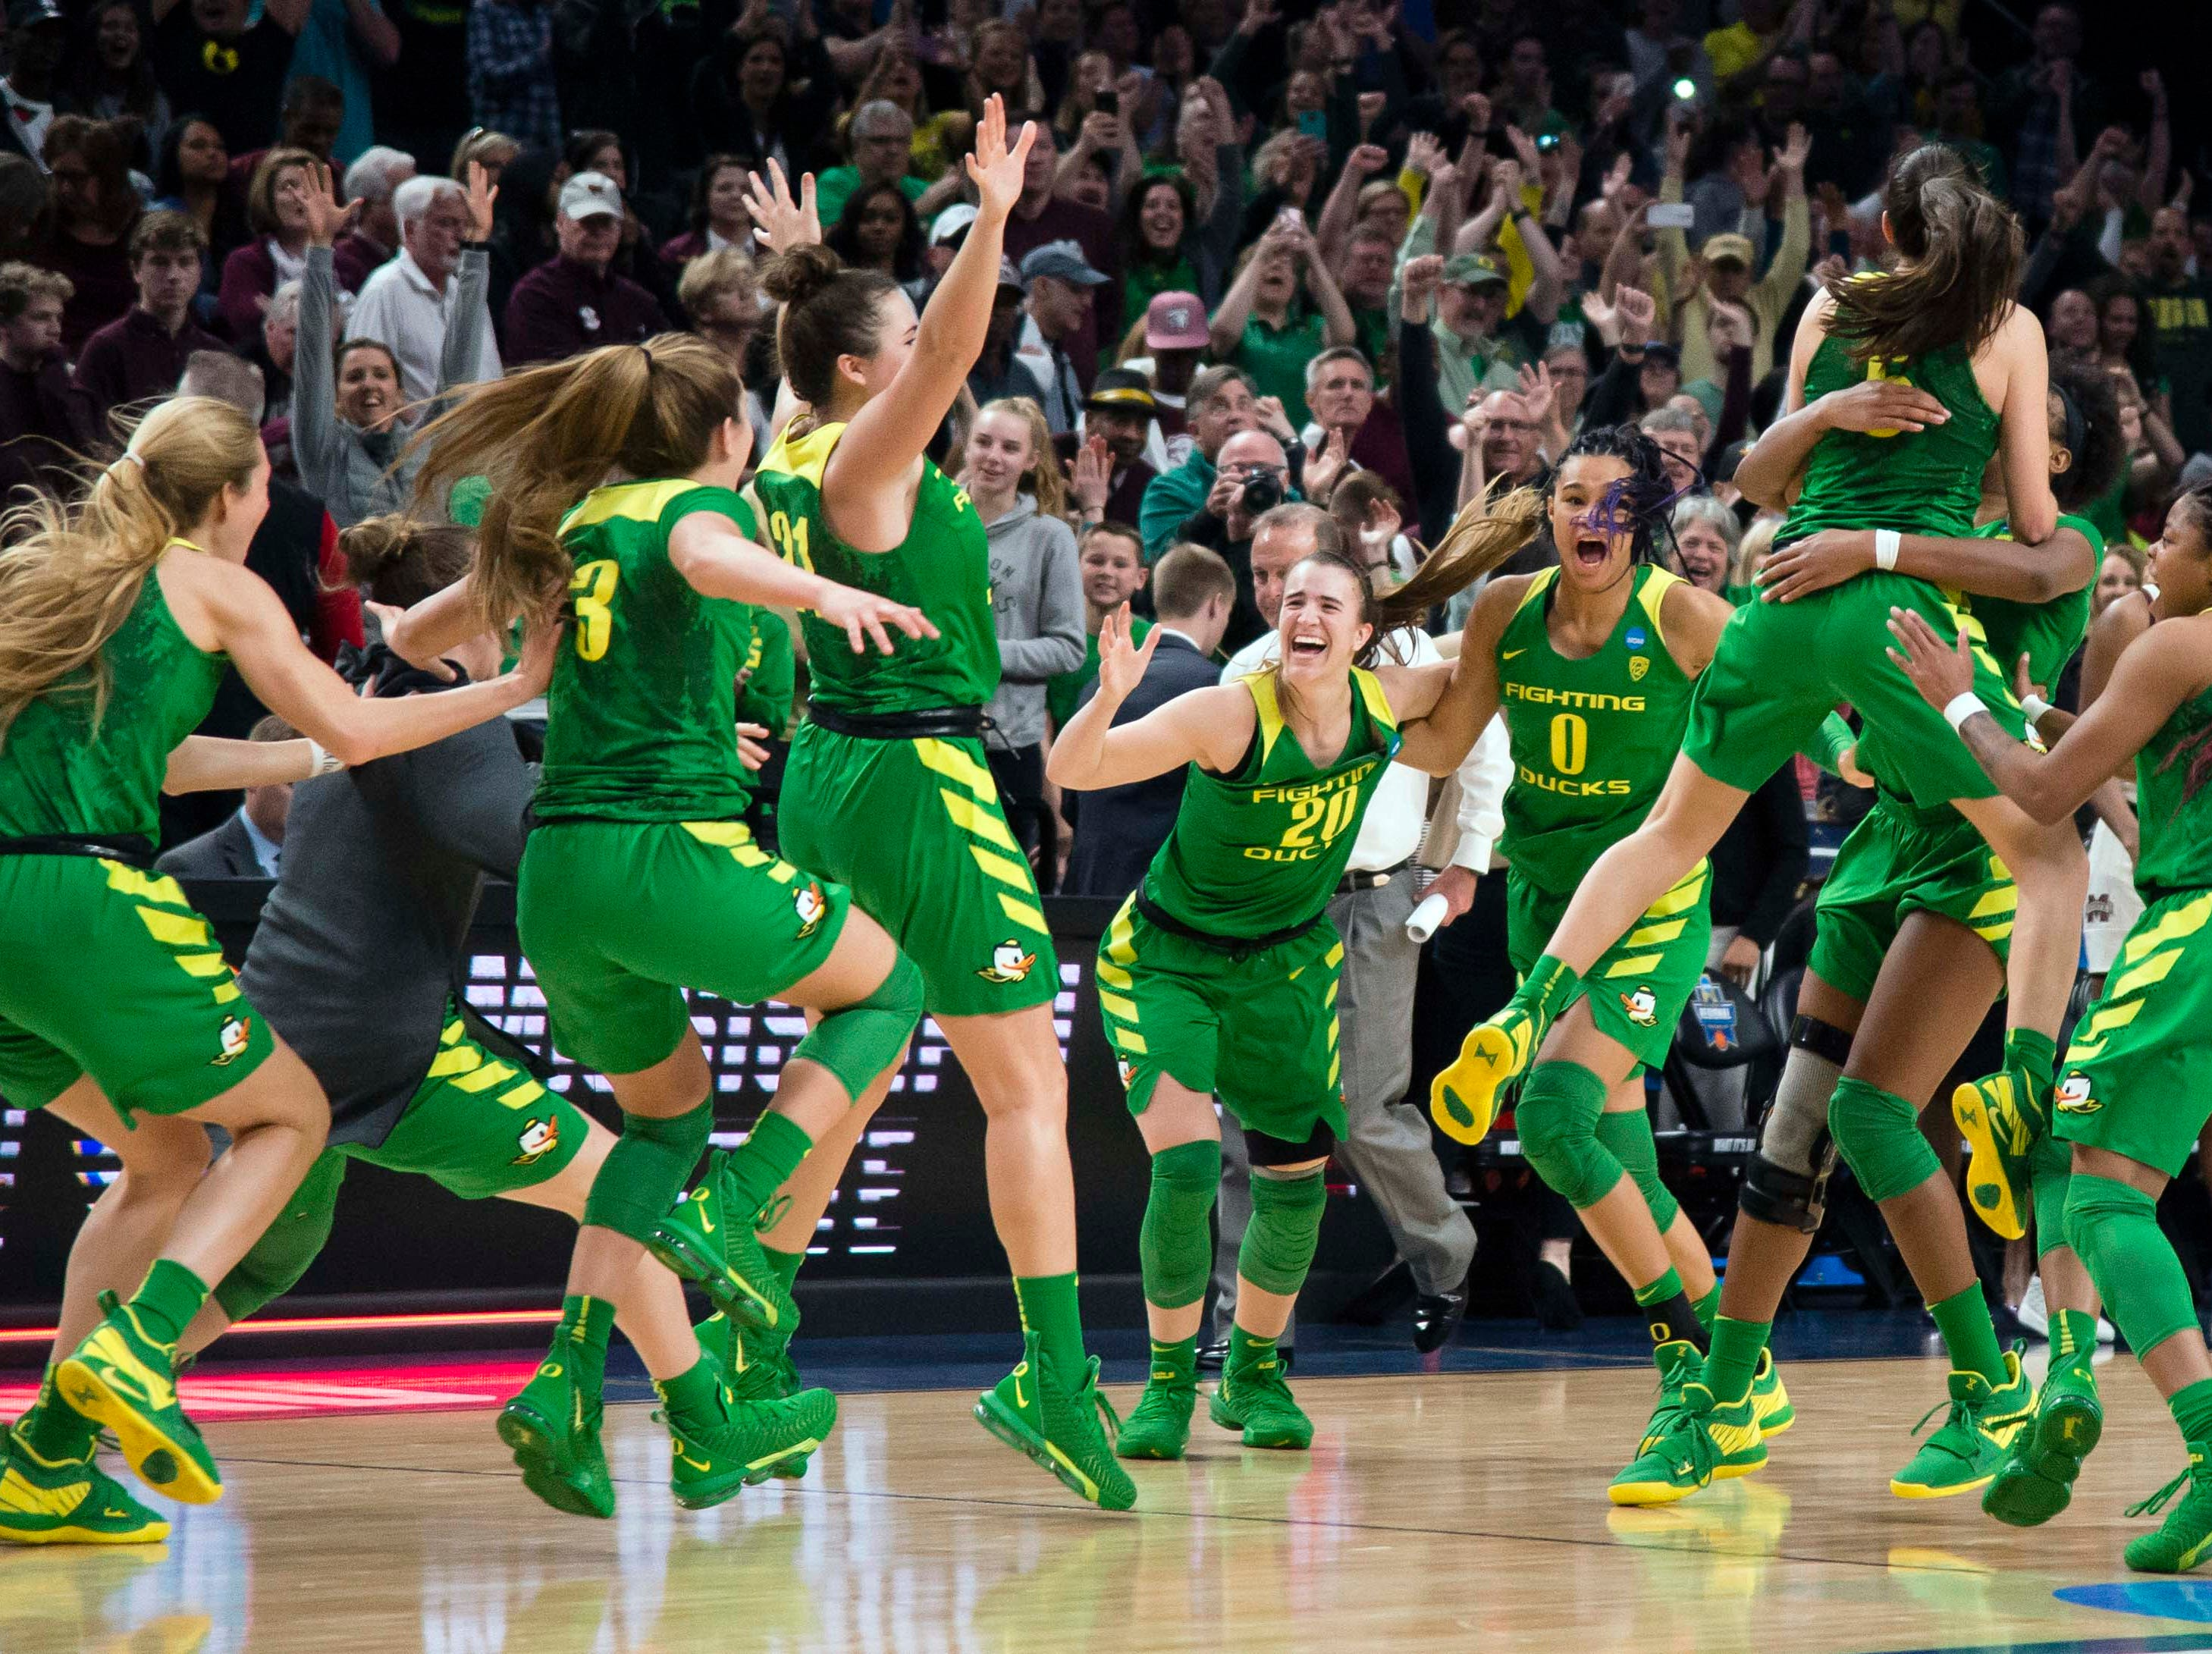 Oregon Ducks guard Sabrina Ionescu (20) and forward Satou Sabally (0) celebrate after a game against the Mississippi State Bulldogs in the championship game of the Portland regional in the women's 2019 NCAA Tournament at Moda Center. The Oregon Ducks beat the Mississippi State Bulldogs 88-84.